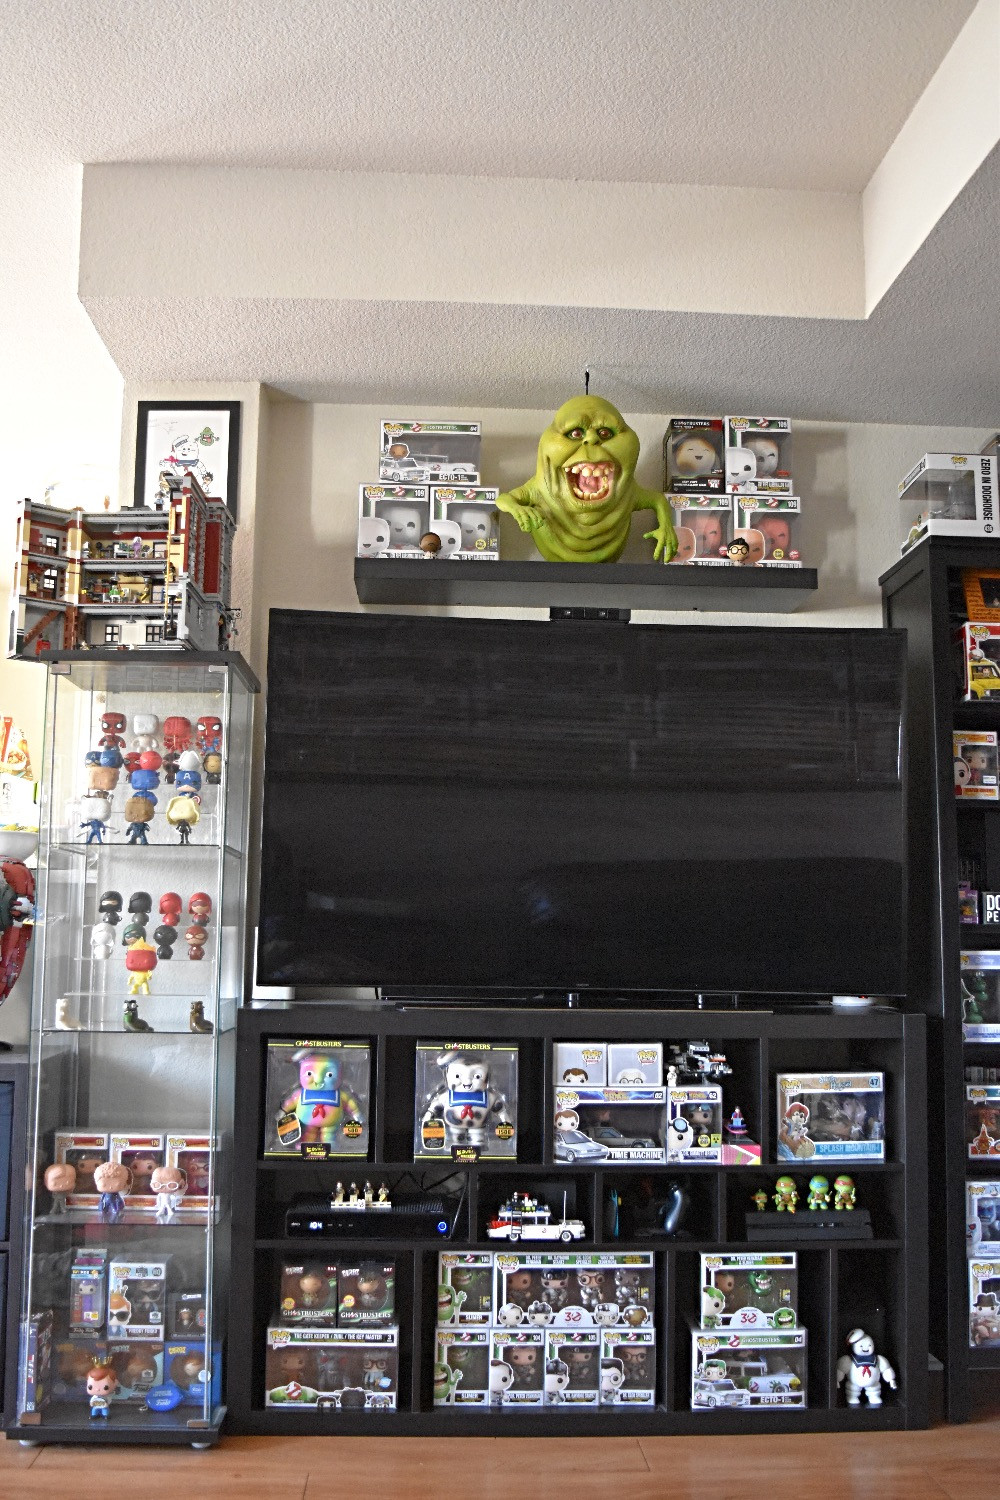 Ghostbuster Funko Collection Organized by Ikea